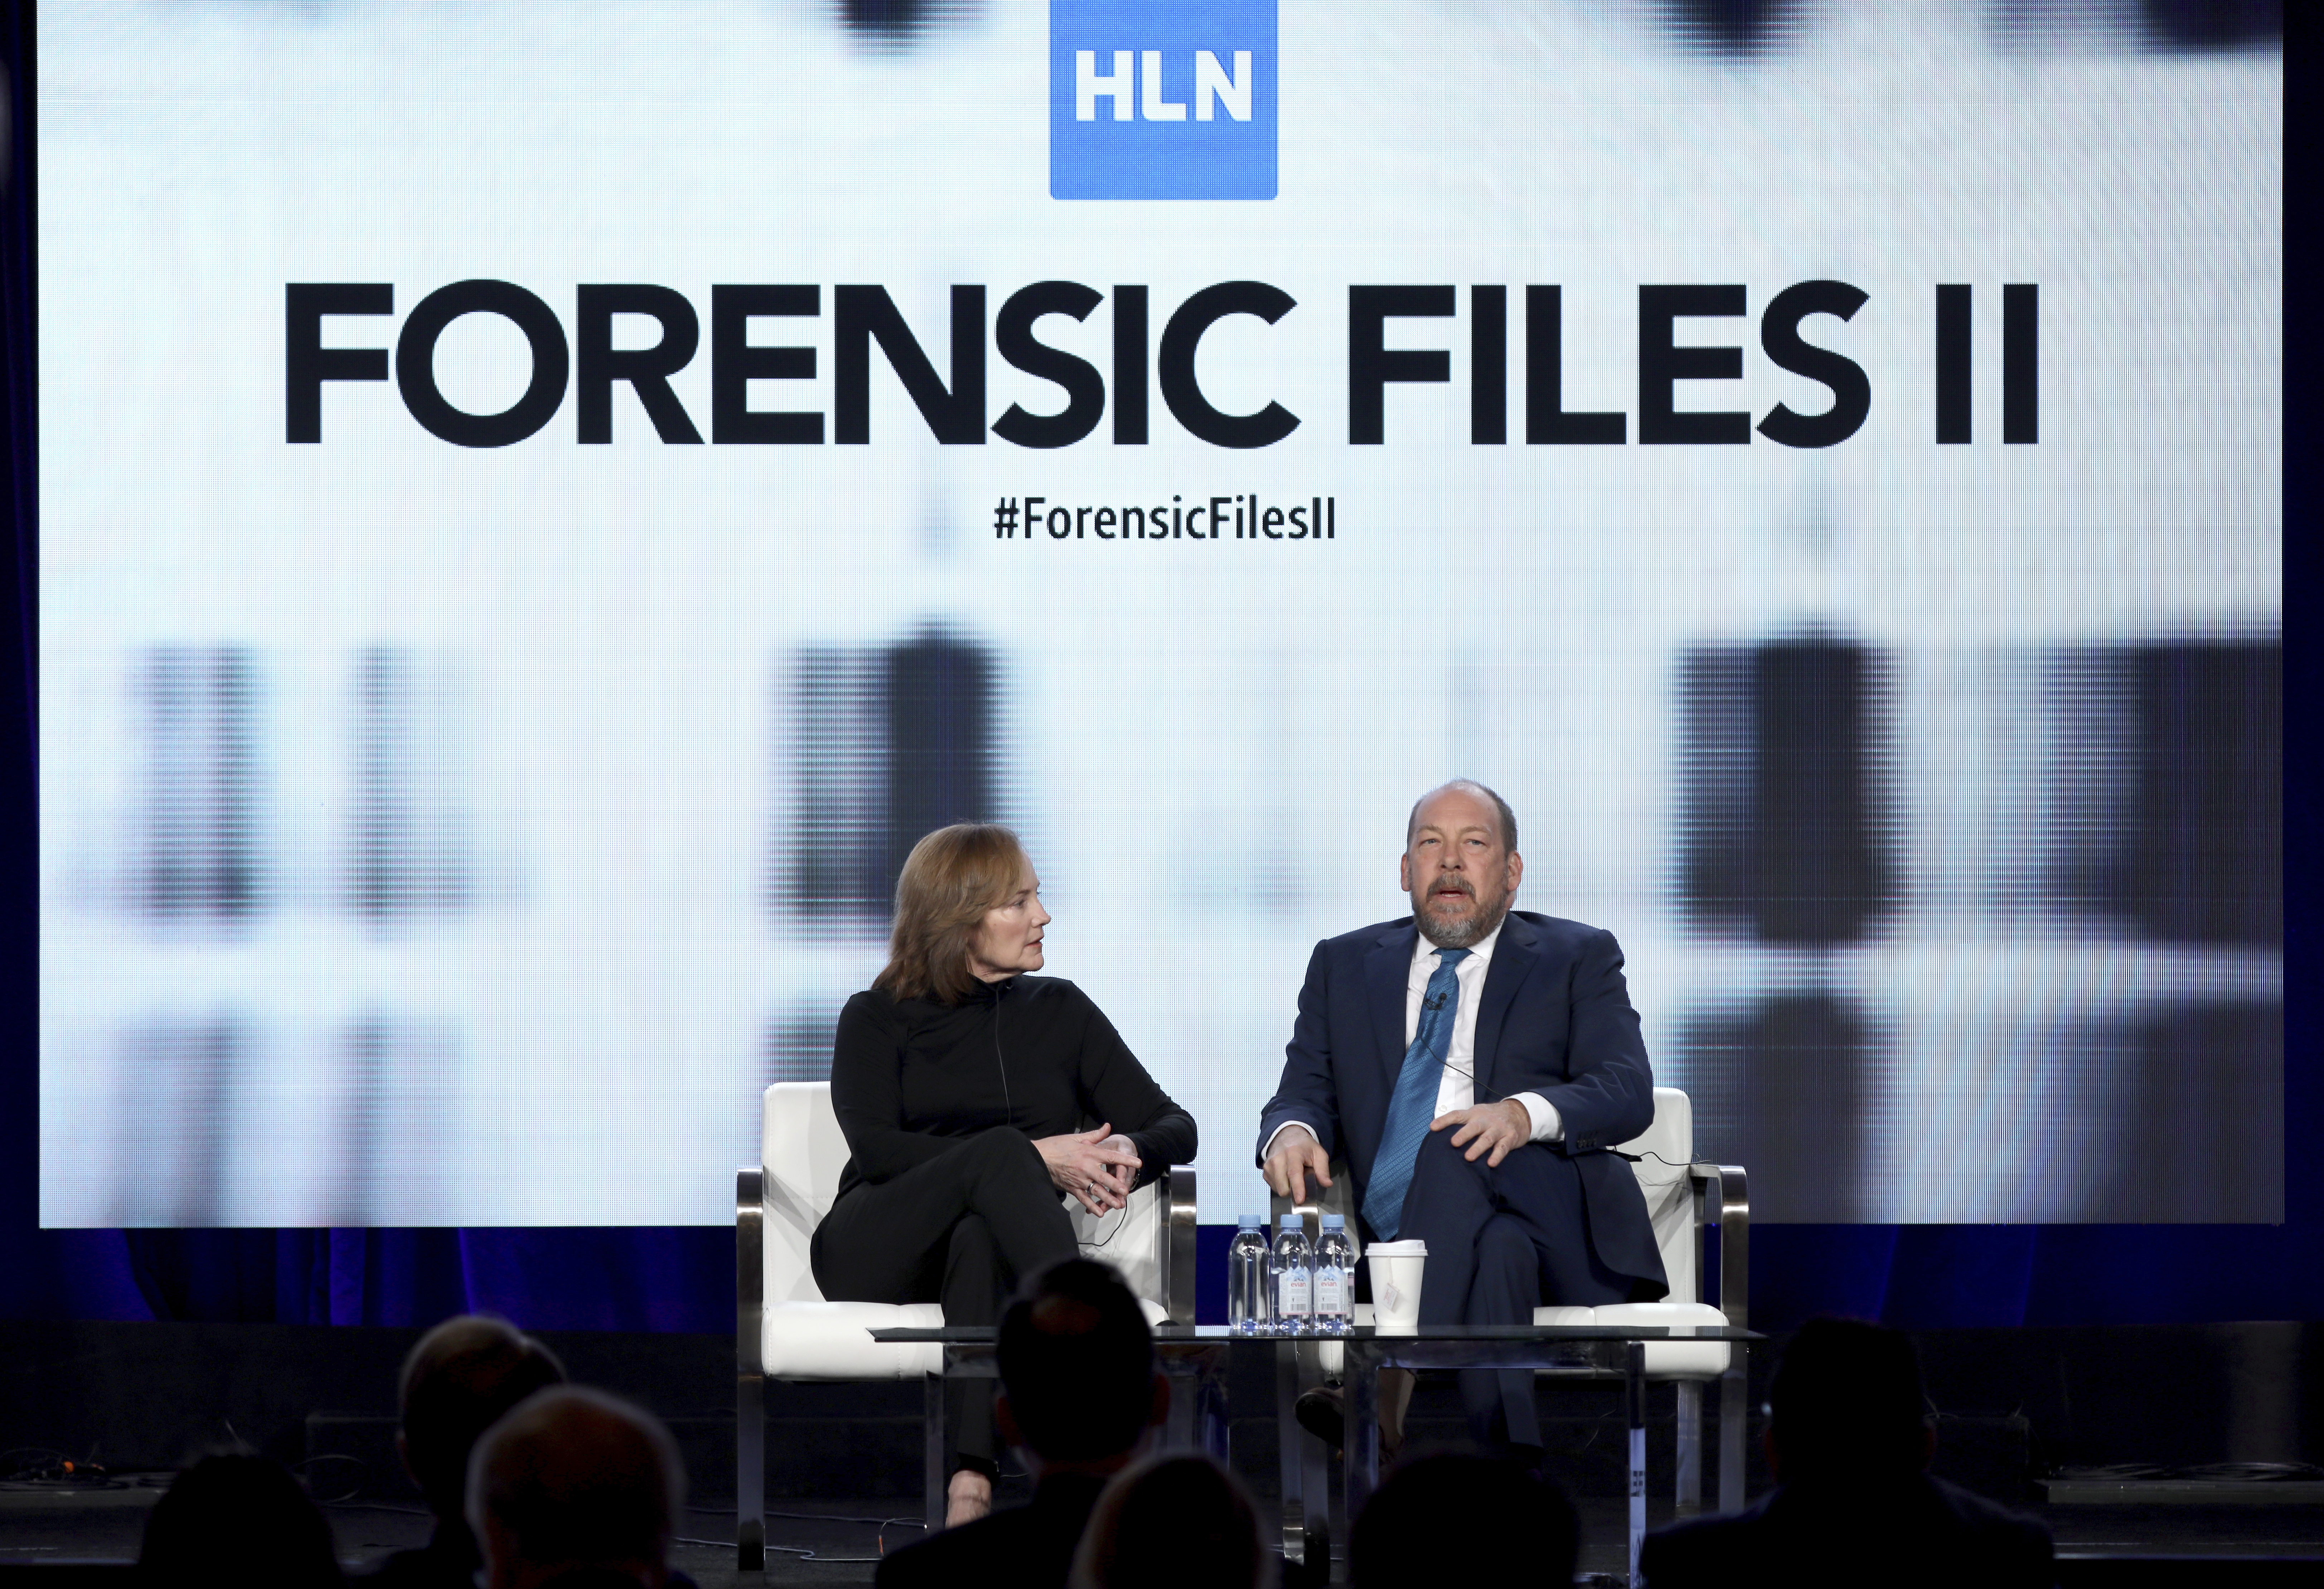 Popular Crime Show Forensic Files To Return Featuring 2 Akron Cases